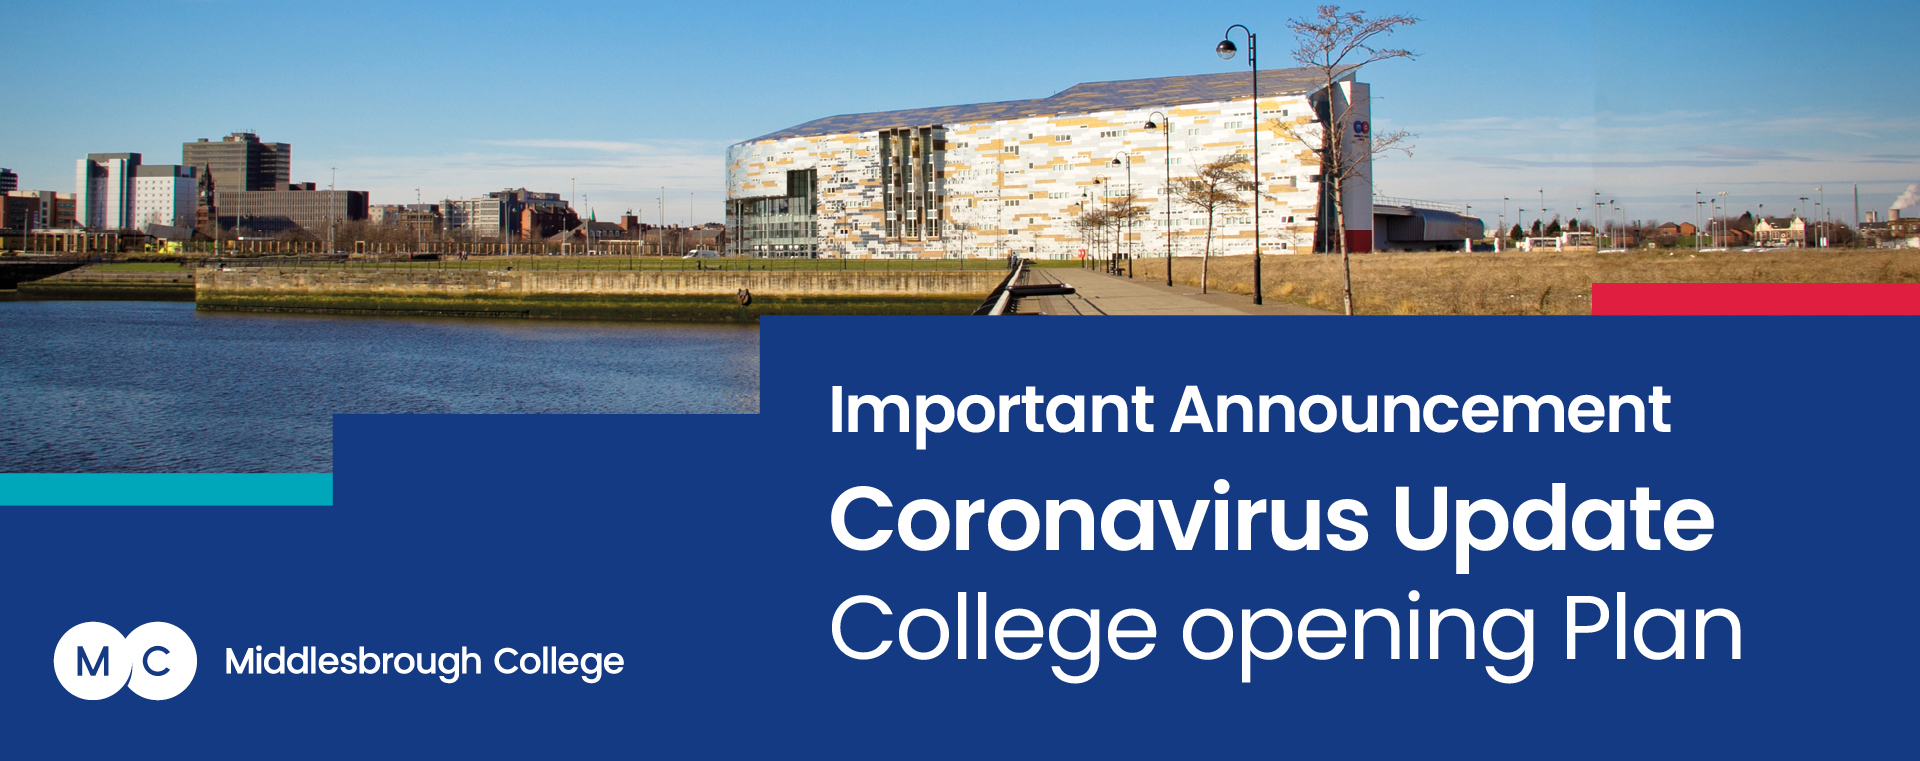 Middlesbrough College Campus Reopening